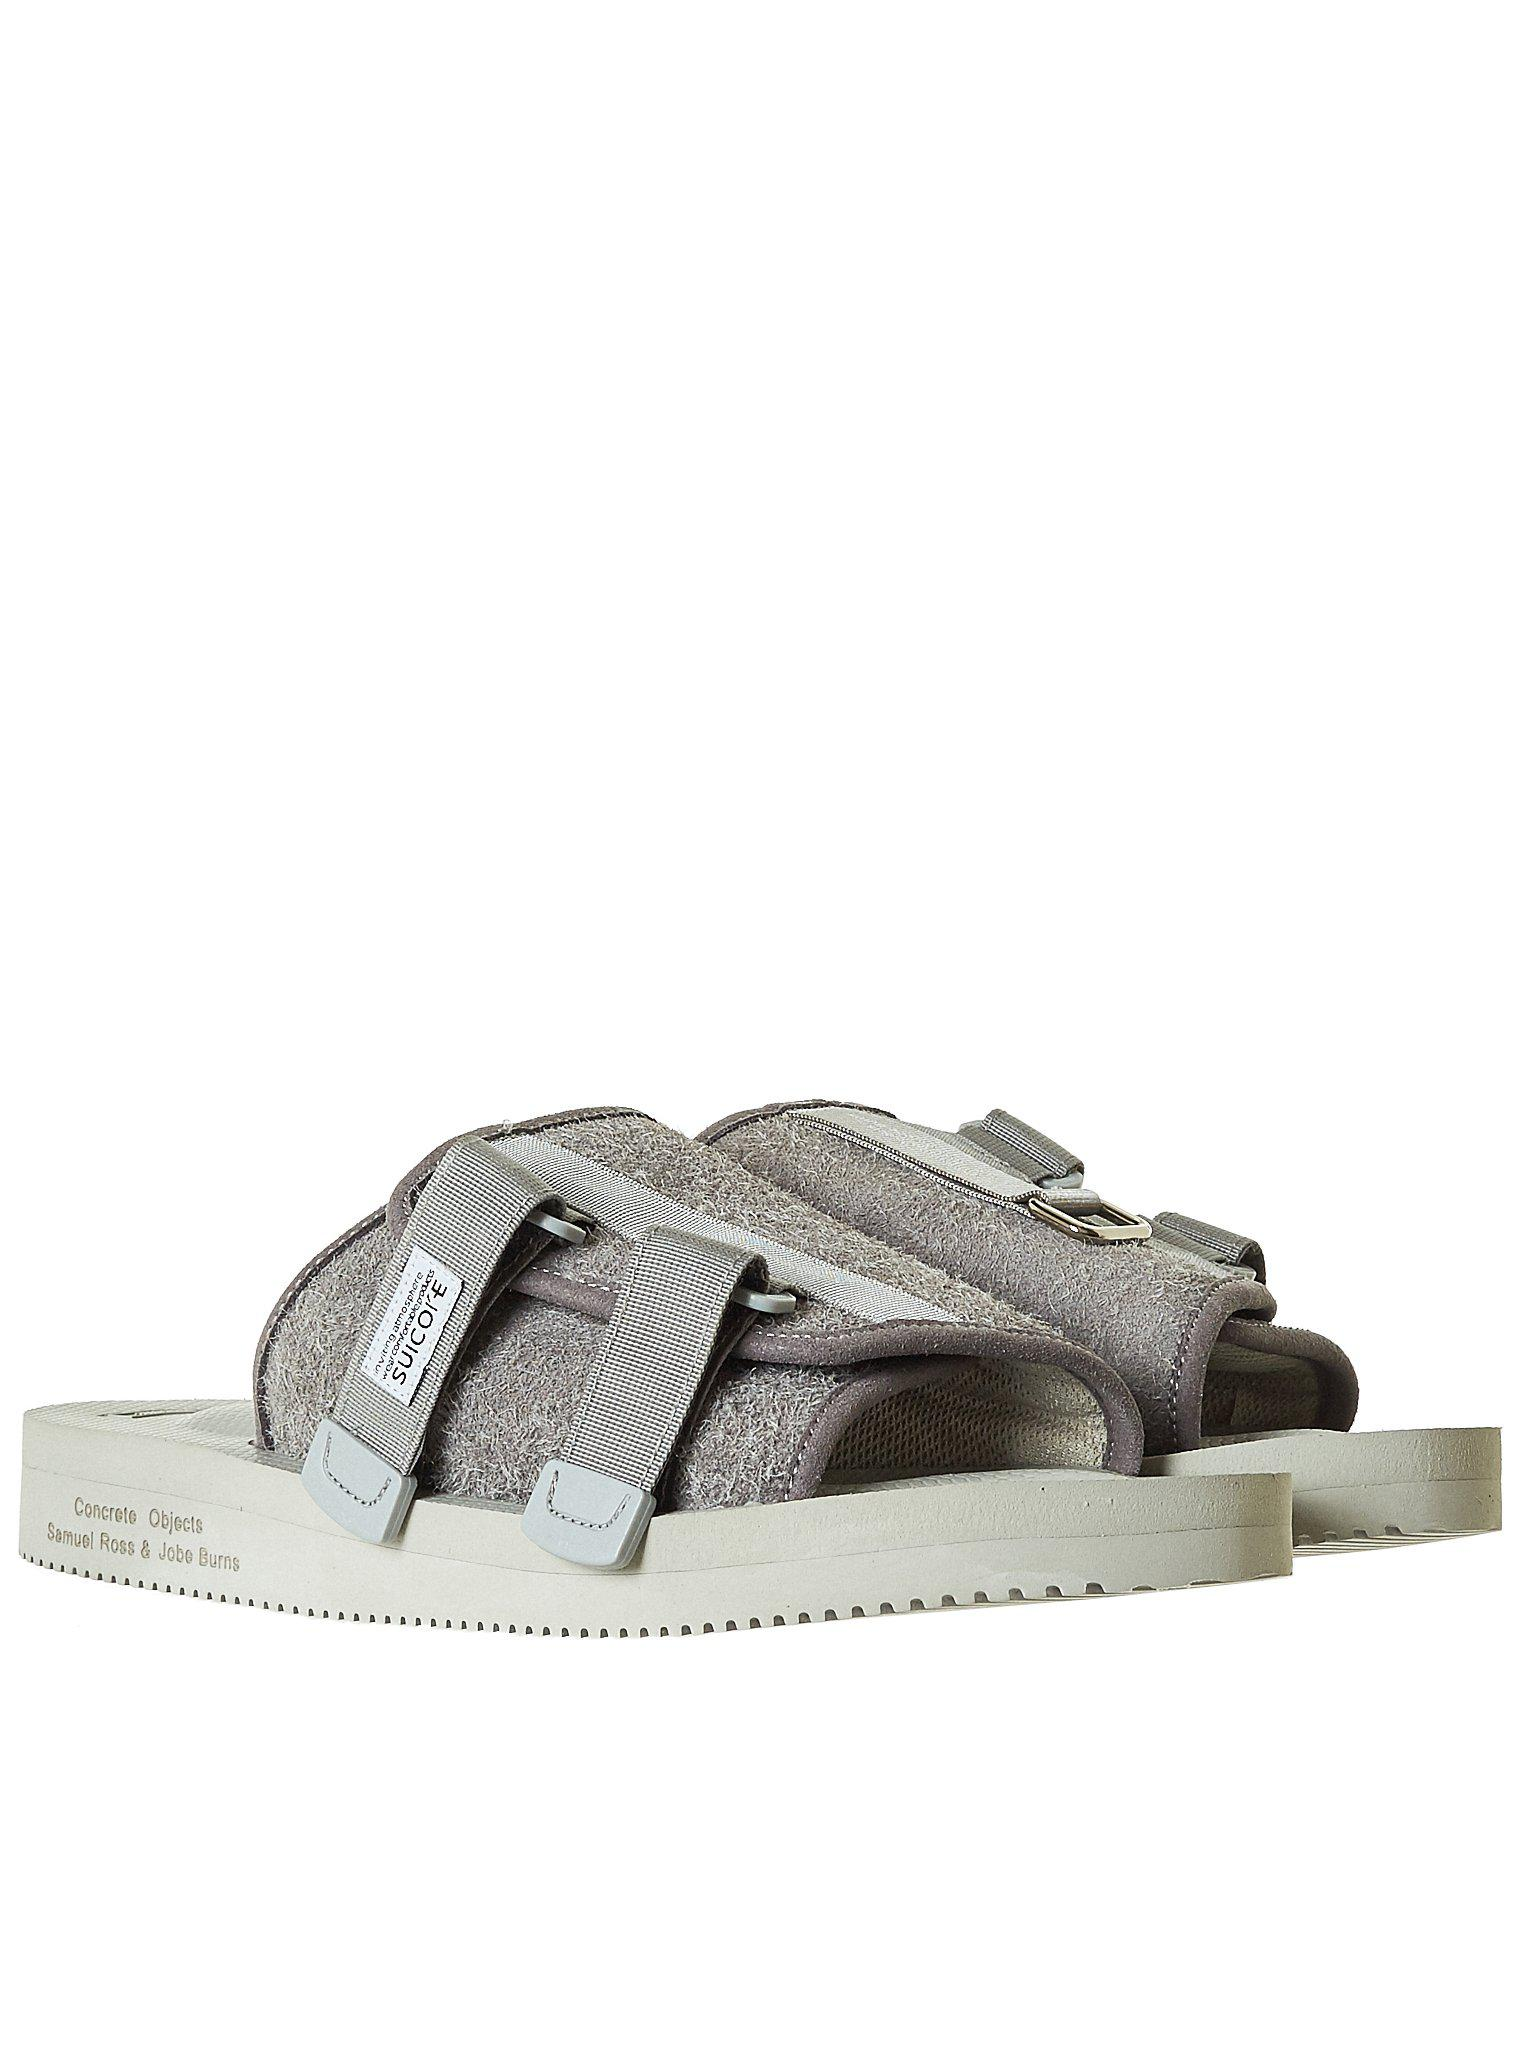 b1657a07f3 Suicoke Lead Resin Kaw Sandal in Gray for Men - Save 8% - Lyst